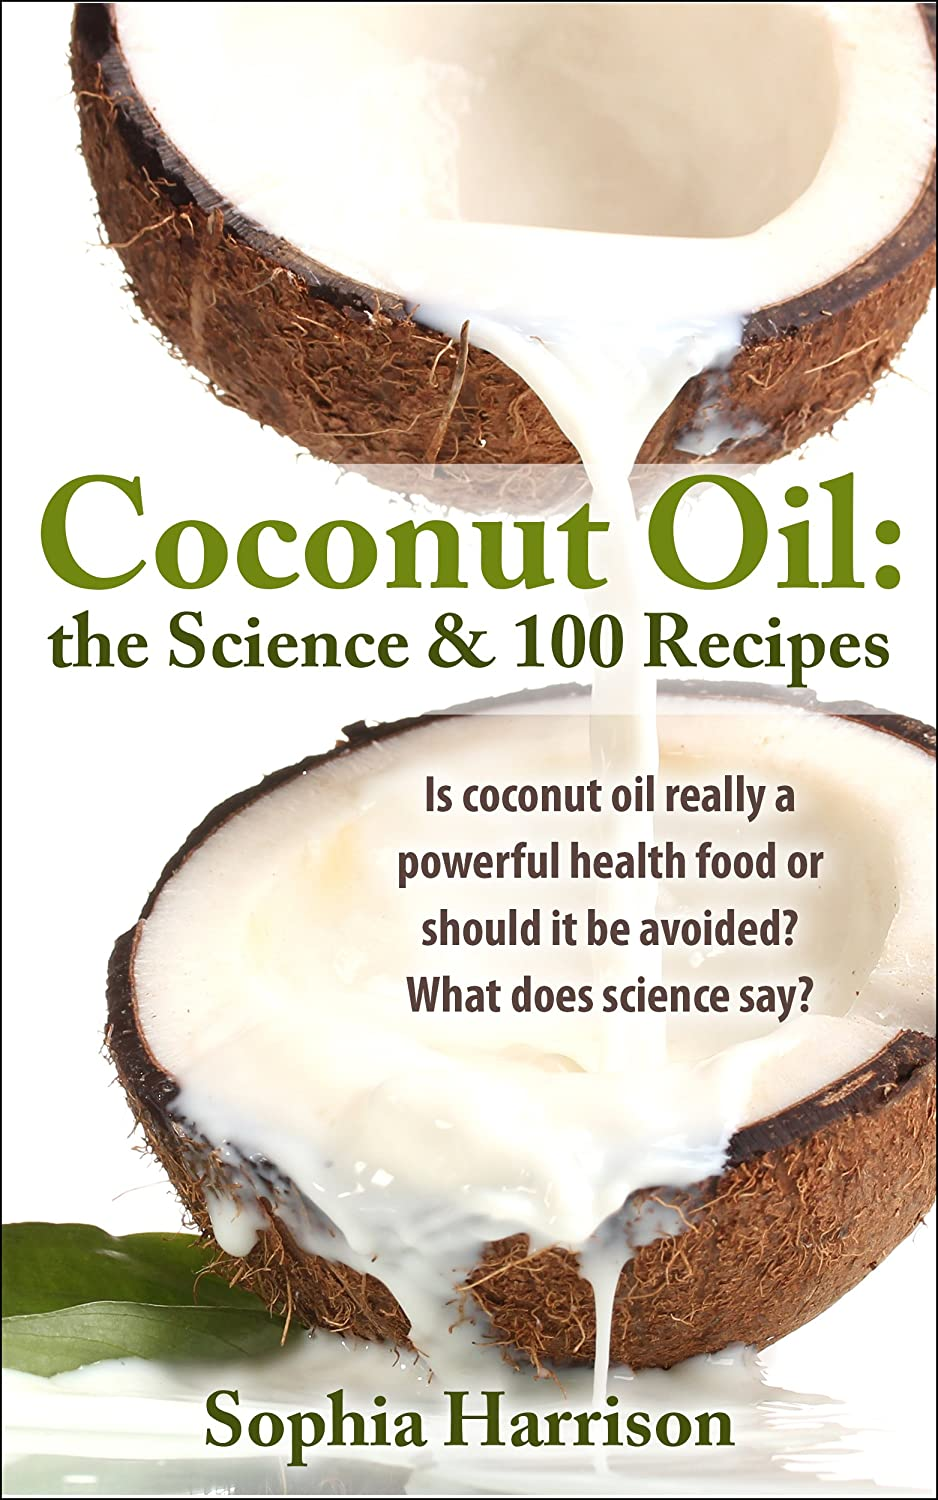 http://www.amazon.com/Coconut-oil-Science-Recipes-powerful-ebook/dp/B00OR54578/ref=as_sl_pc_ss_til?tag=lettfromahome-20&linkCode=w01&linkId=L6UU72YRFYOLYK4X&creativeASIN=B00OR54578